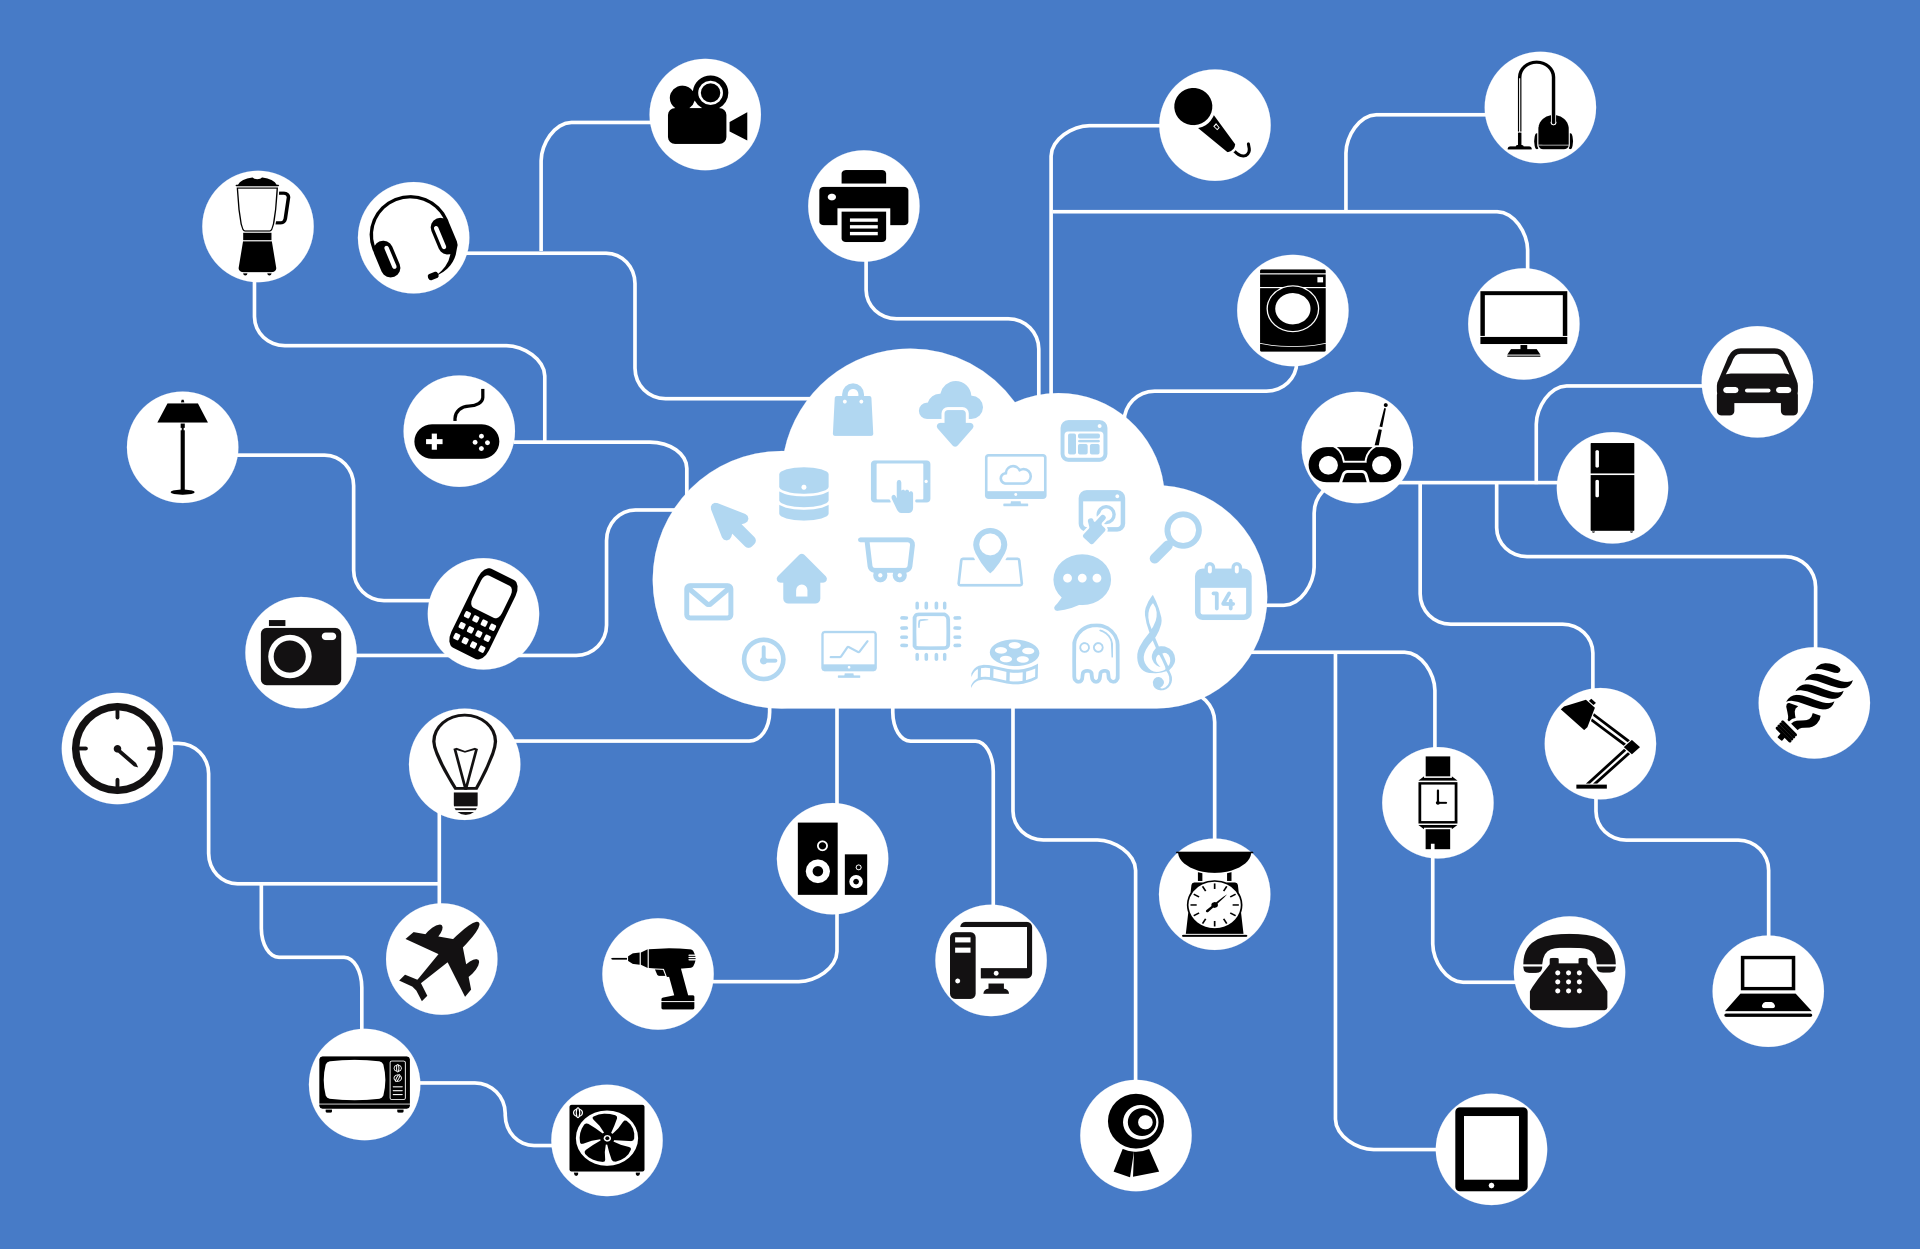 9 IoT Security Solutions to safeguard your IoT network